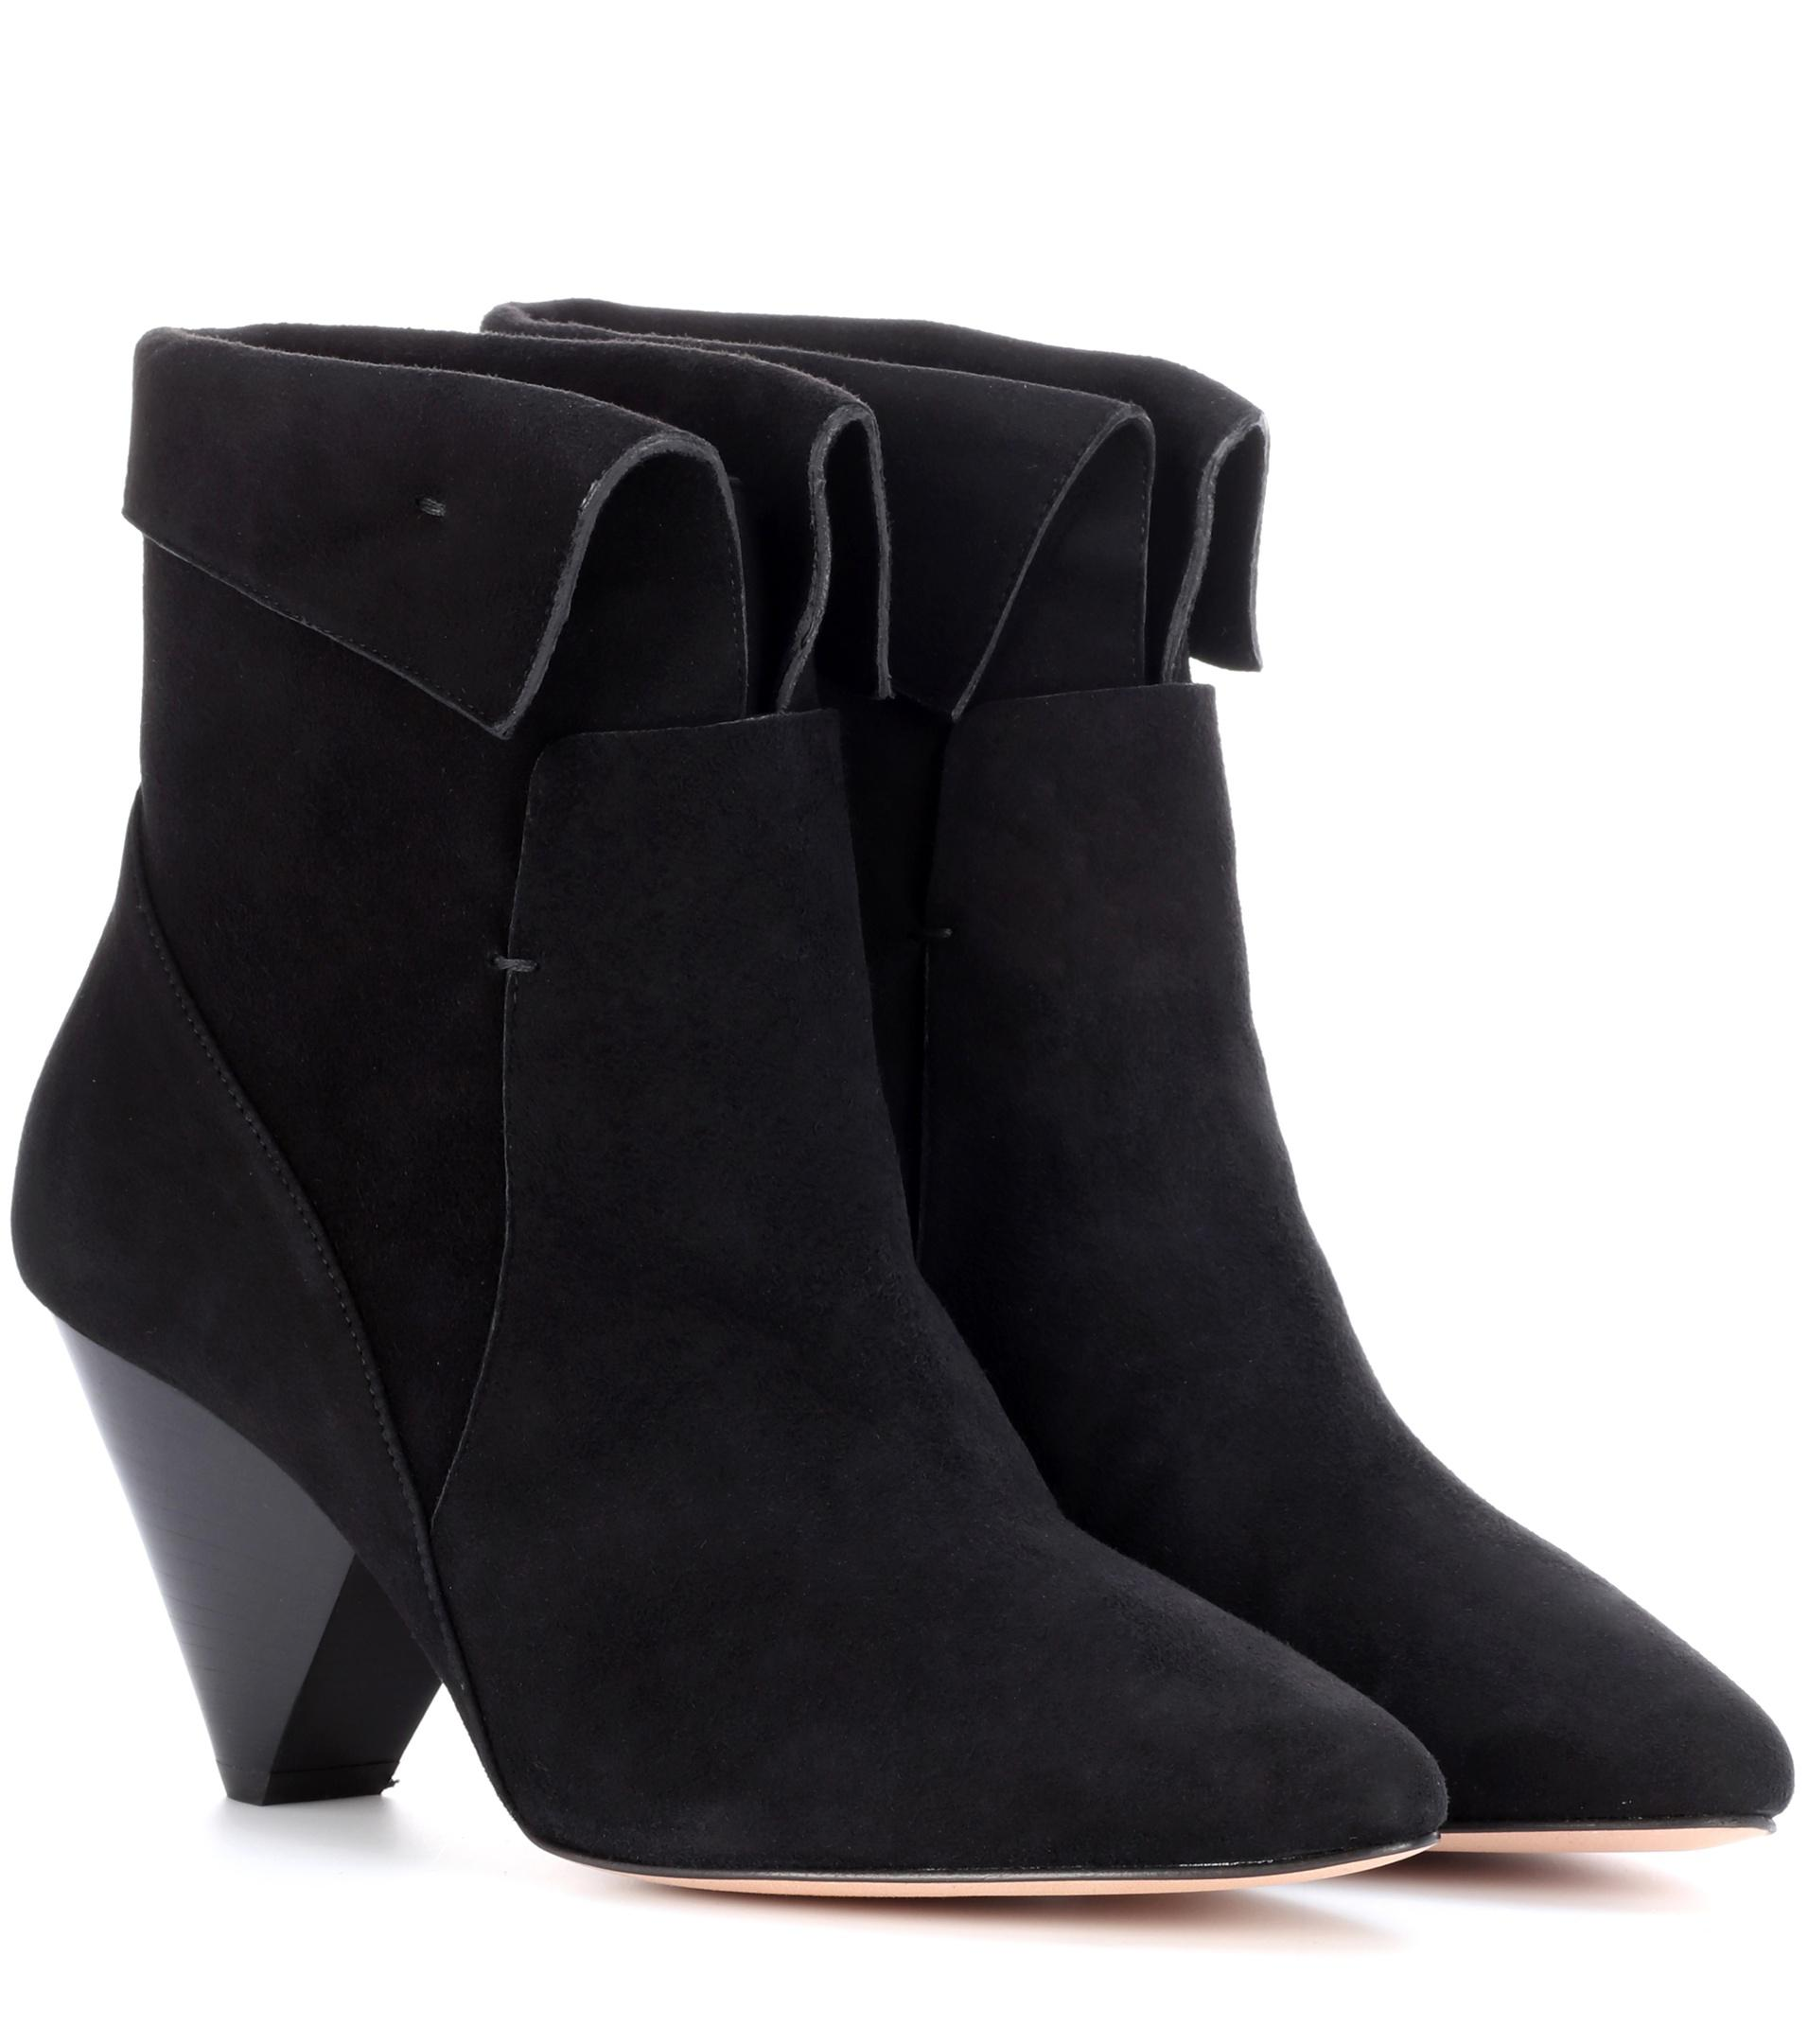 Veronica Beard Suede Mid-Calf Boots amazon for sale for sale cheap real cheap official site pre order sale online mzqtyFuVY6